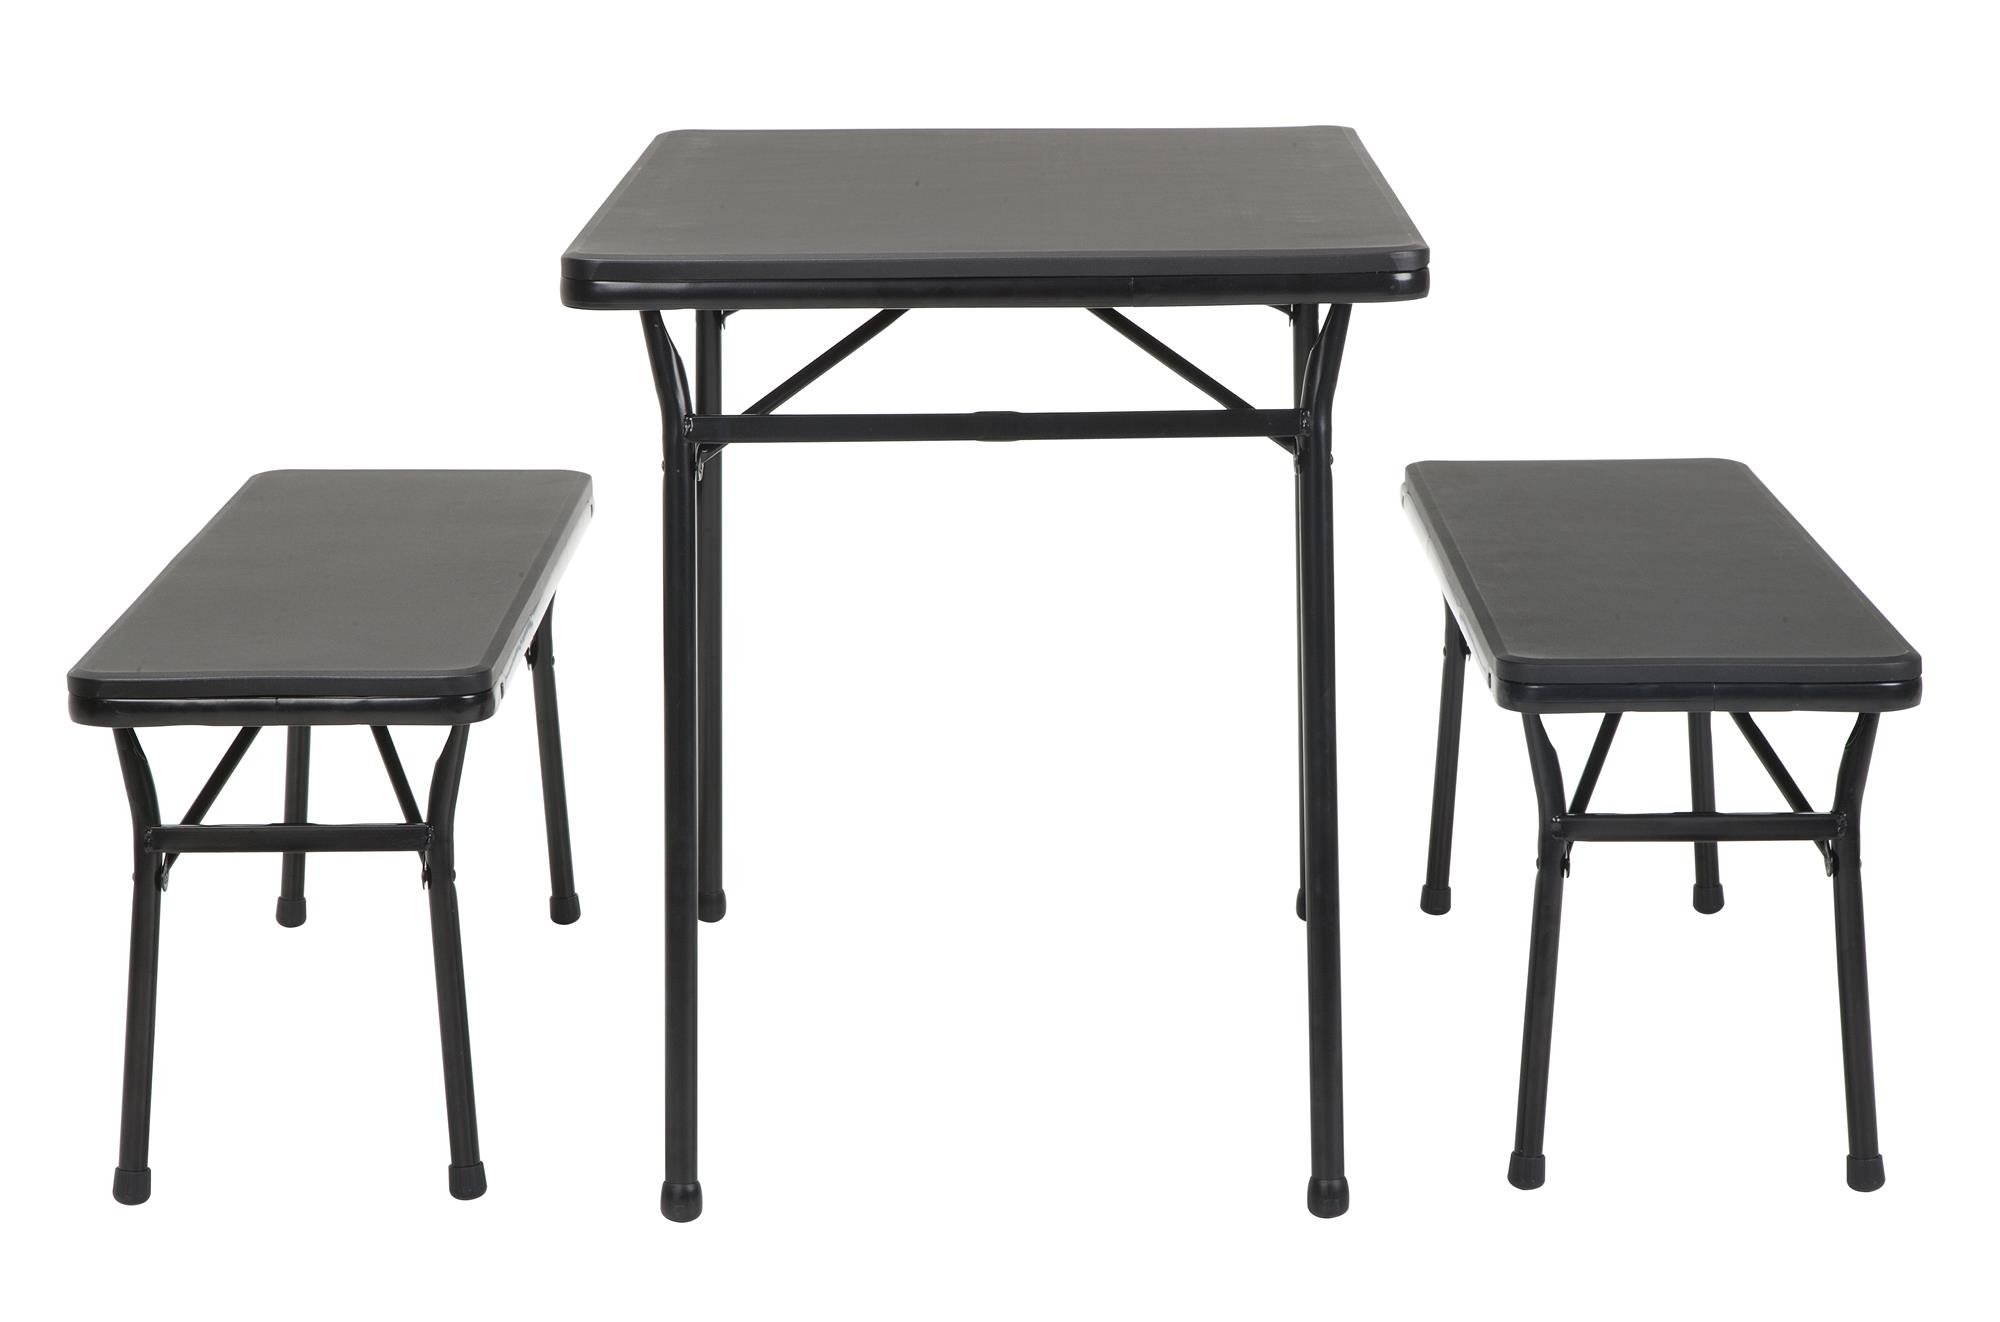 Cosco Products COSCO 3 Piece Indoor Outdoor Table and 2 Bench Tailgate Set, Black by Cosco Products (Image #5)